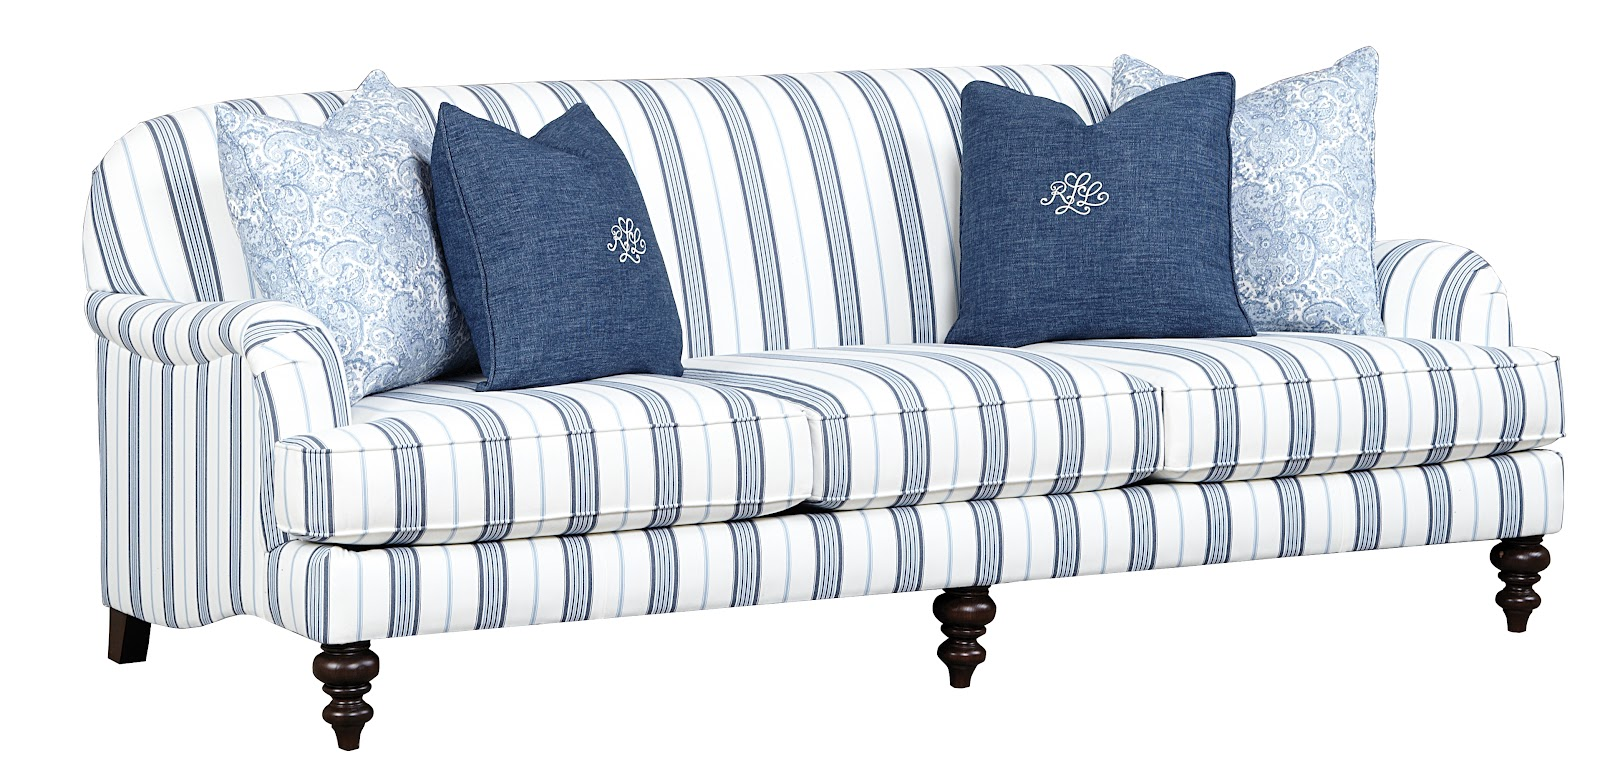 Gift & Home Today: Willowwood Road is a new furniture collection ...